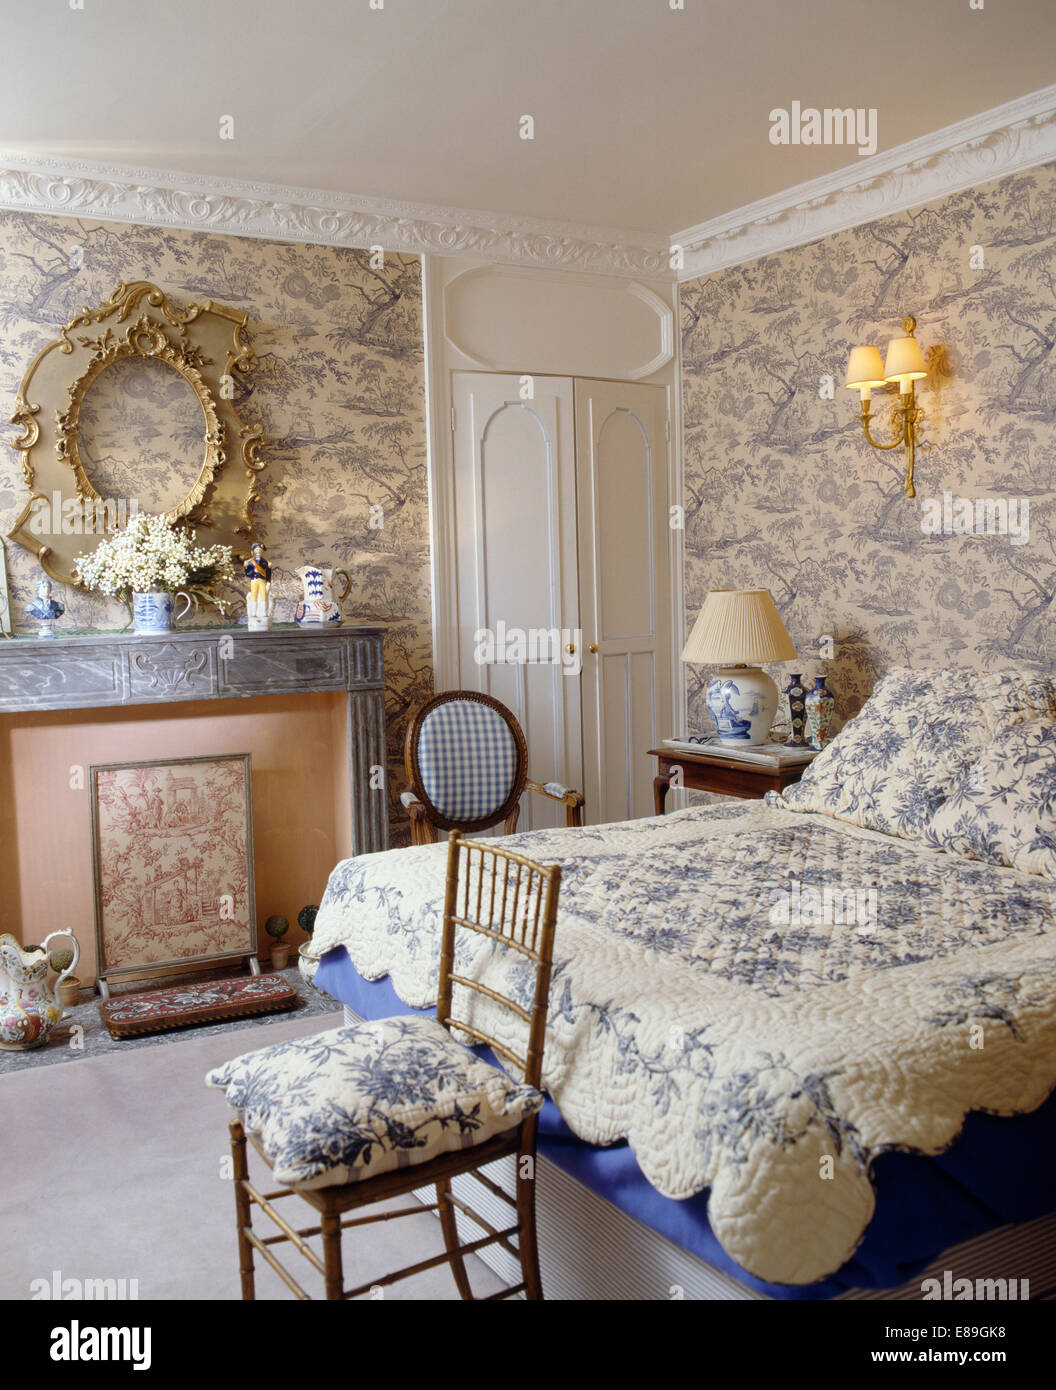 Merveilleux Blue Toile De Jouy Wallpaper In Bedroom With Blue Floral Quilt On Bed And  Ornate Picture Frame Above Fireplace